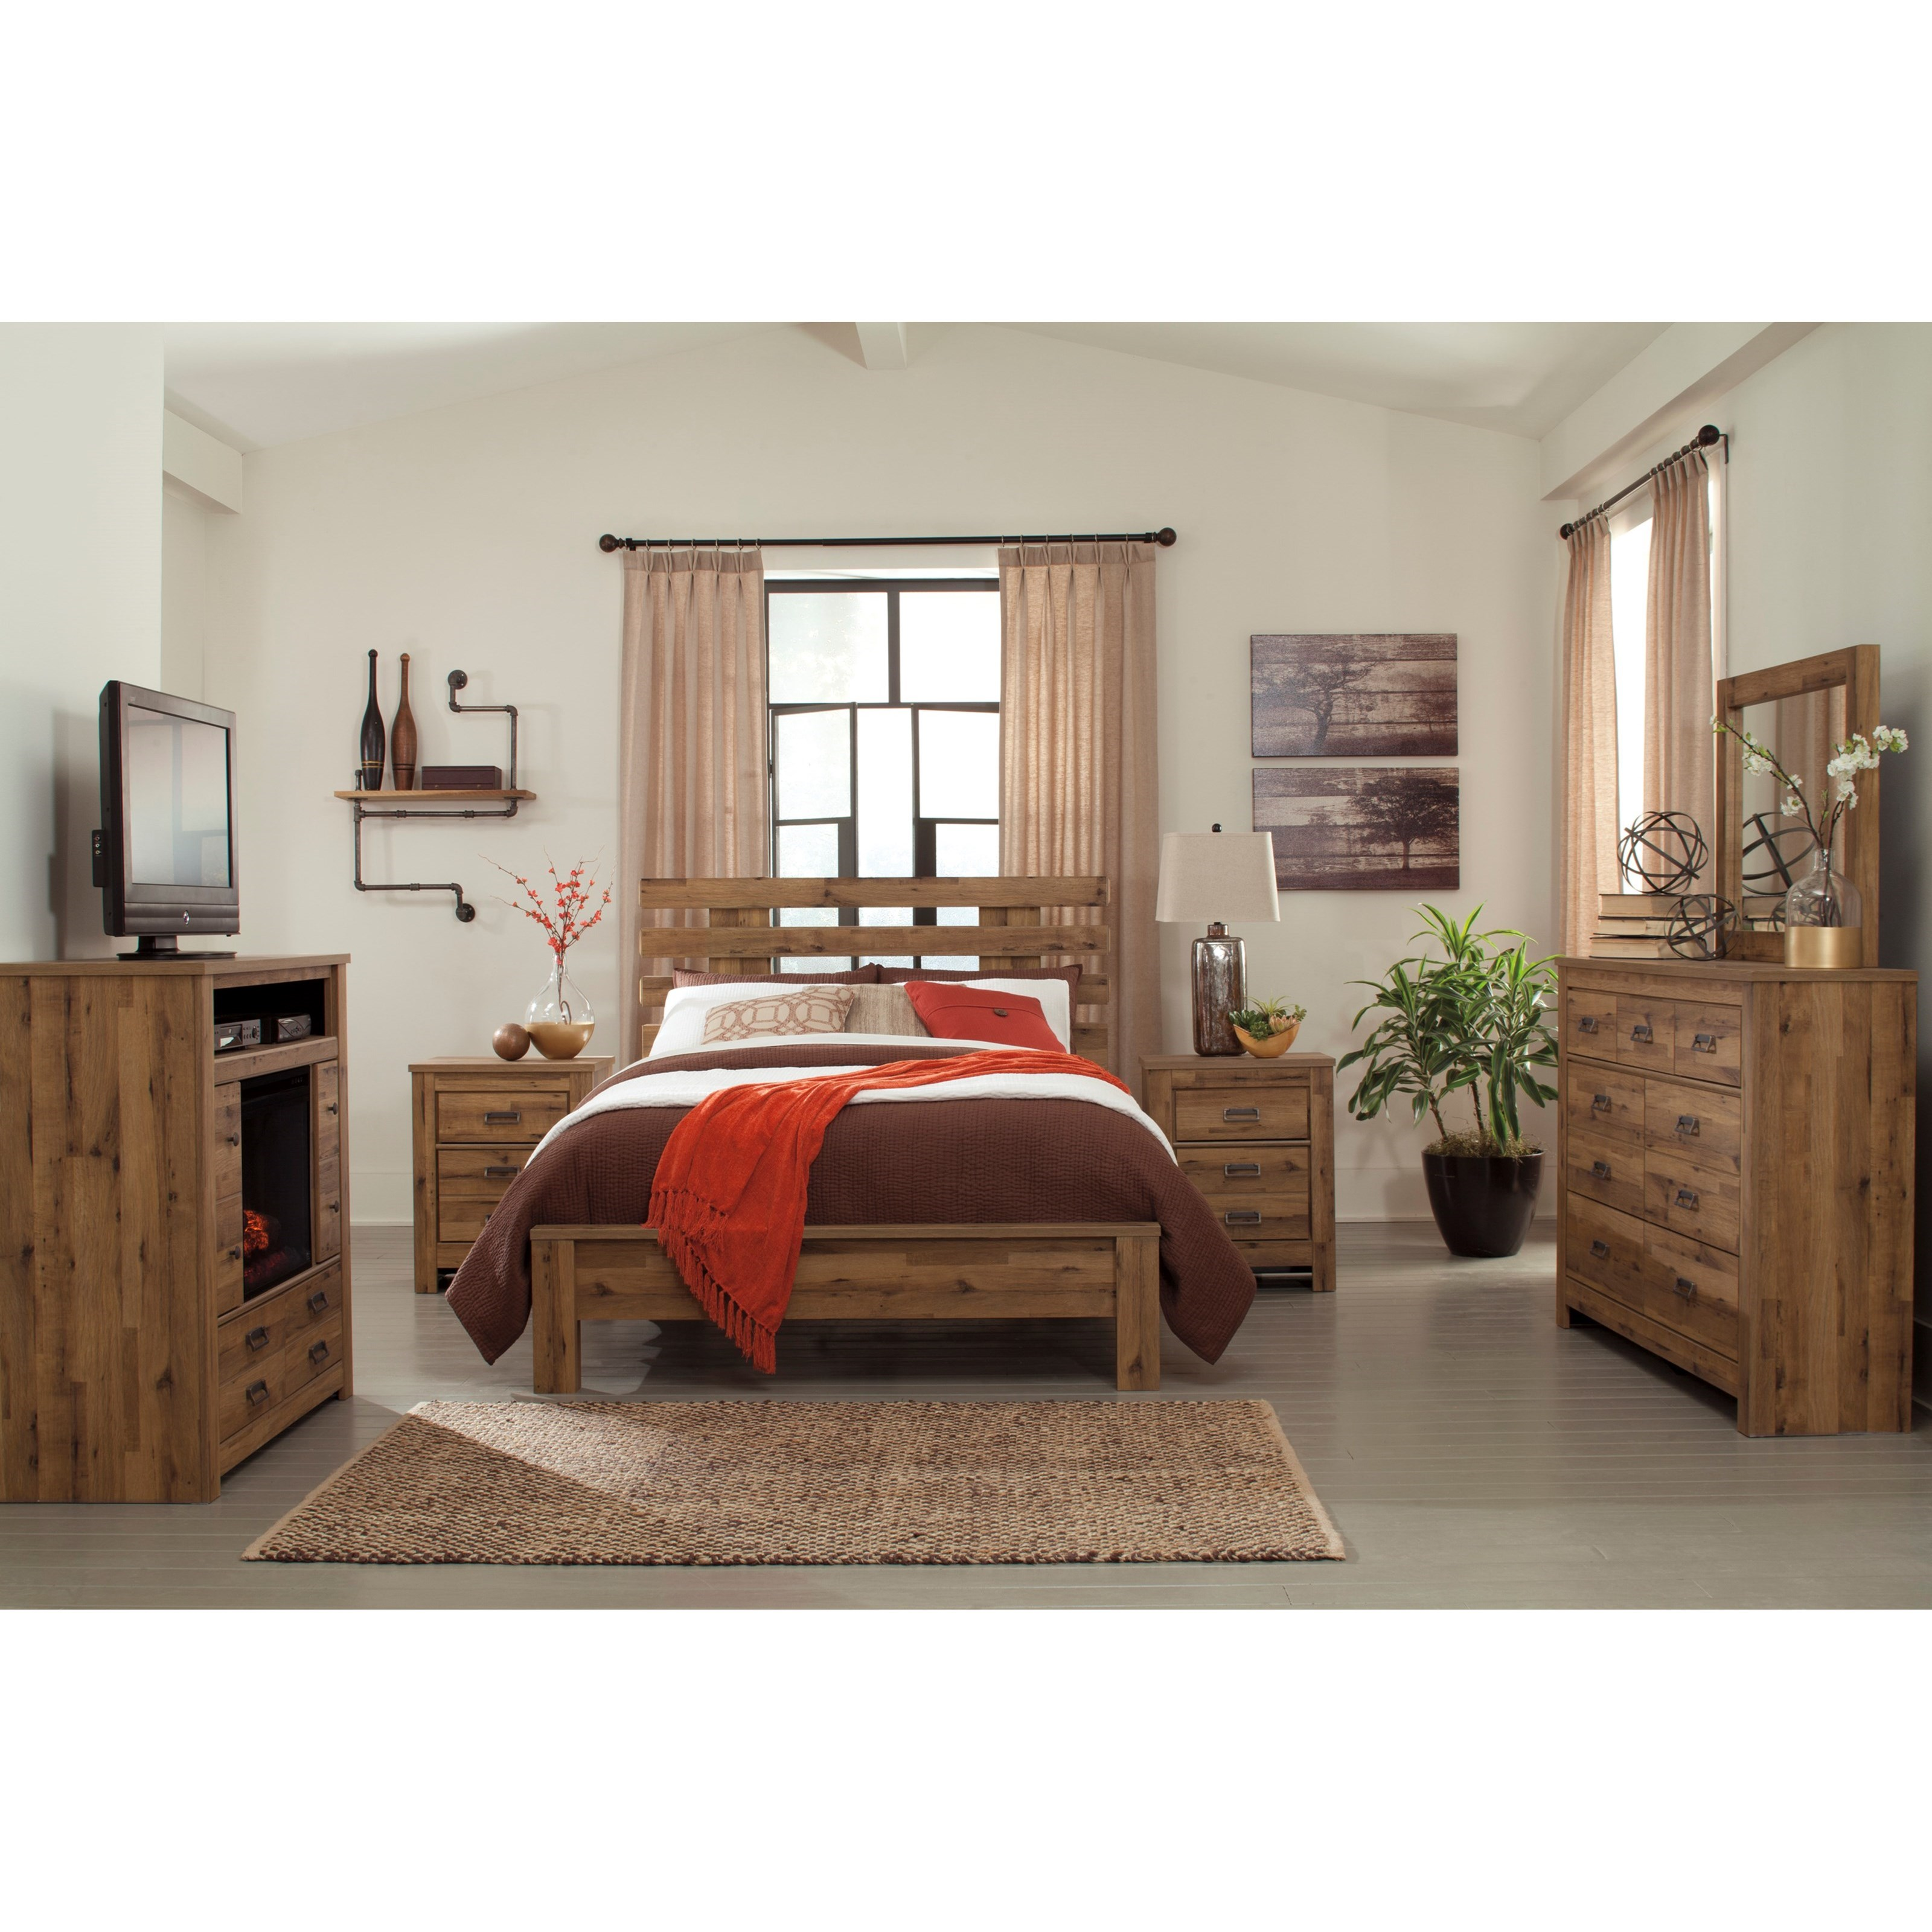 Signature Design by Ashley Cinrey Queen Bedroom Group - Item Number: B369 Q Bedroom Group 3